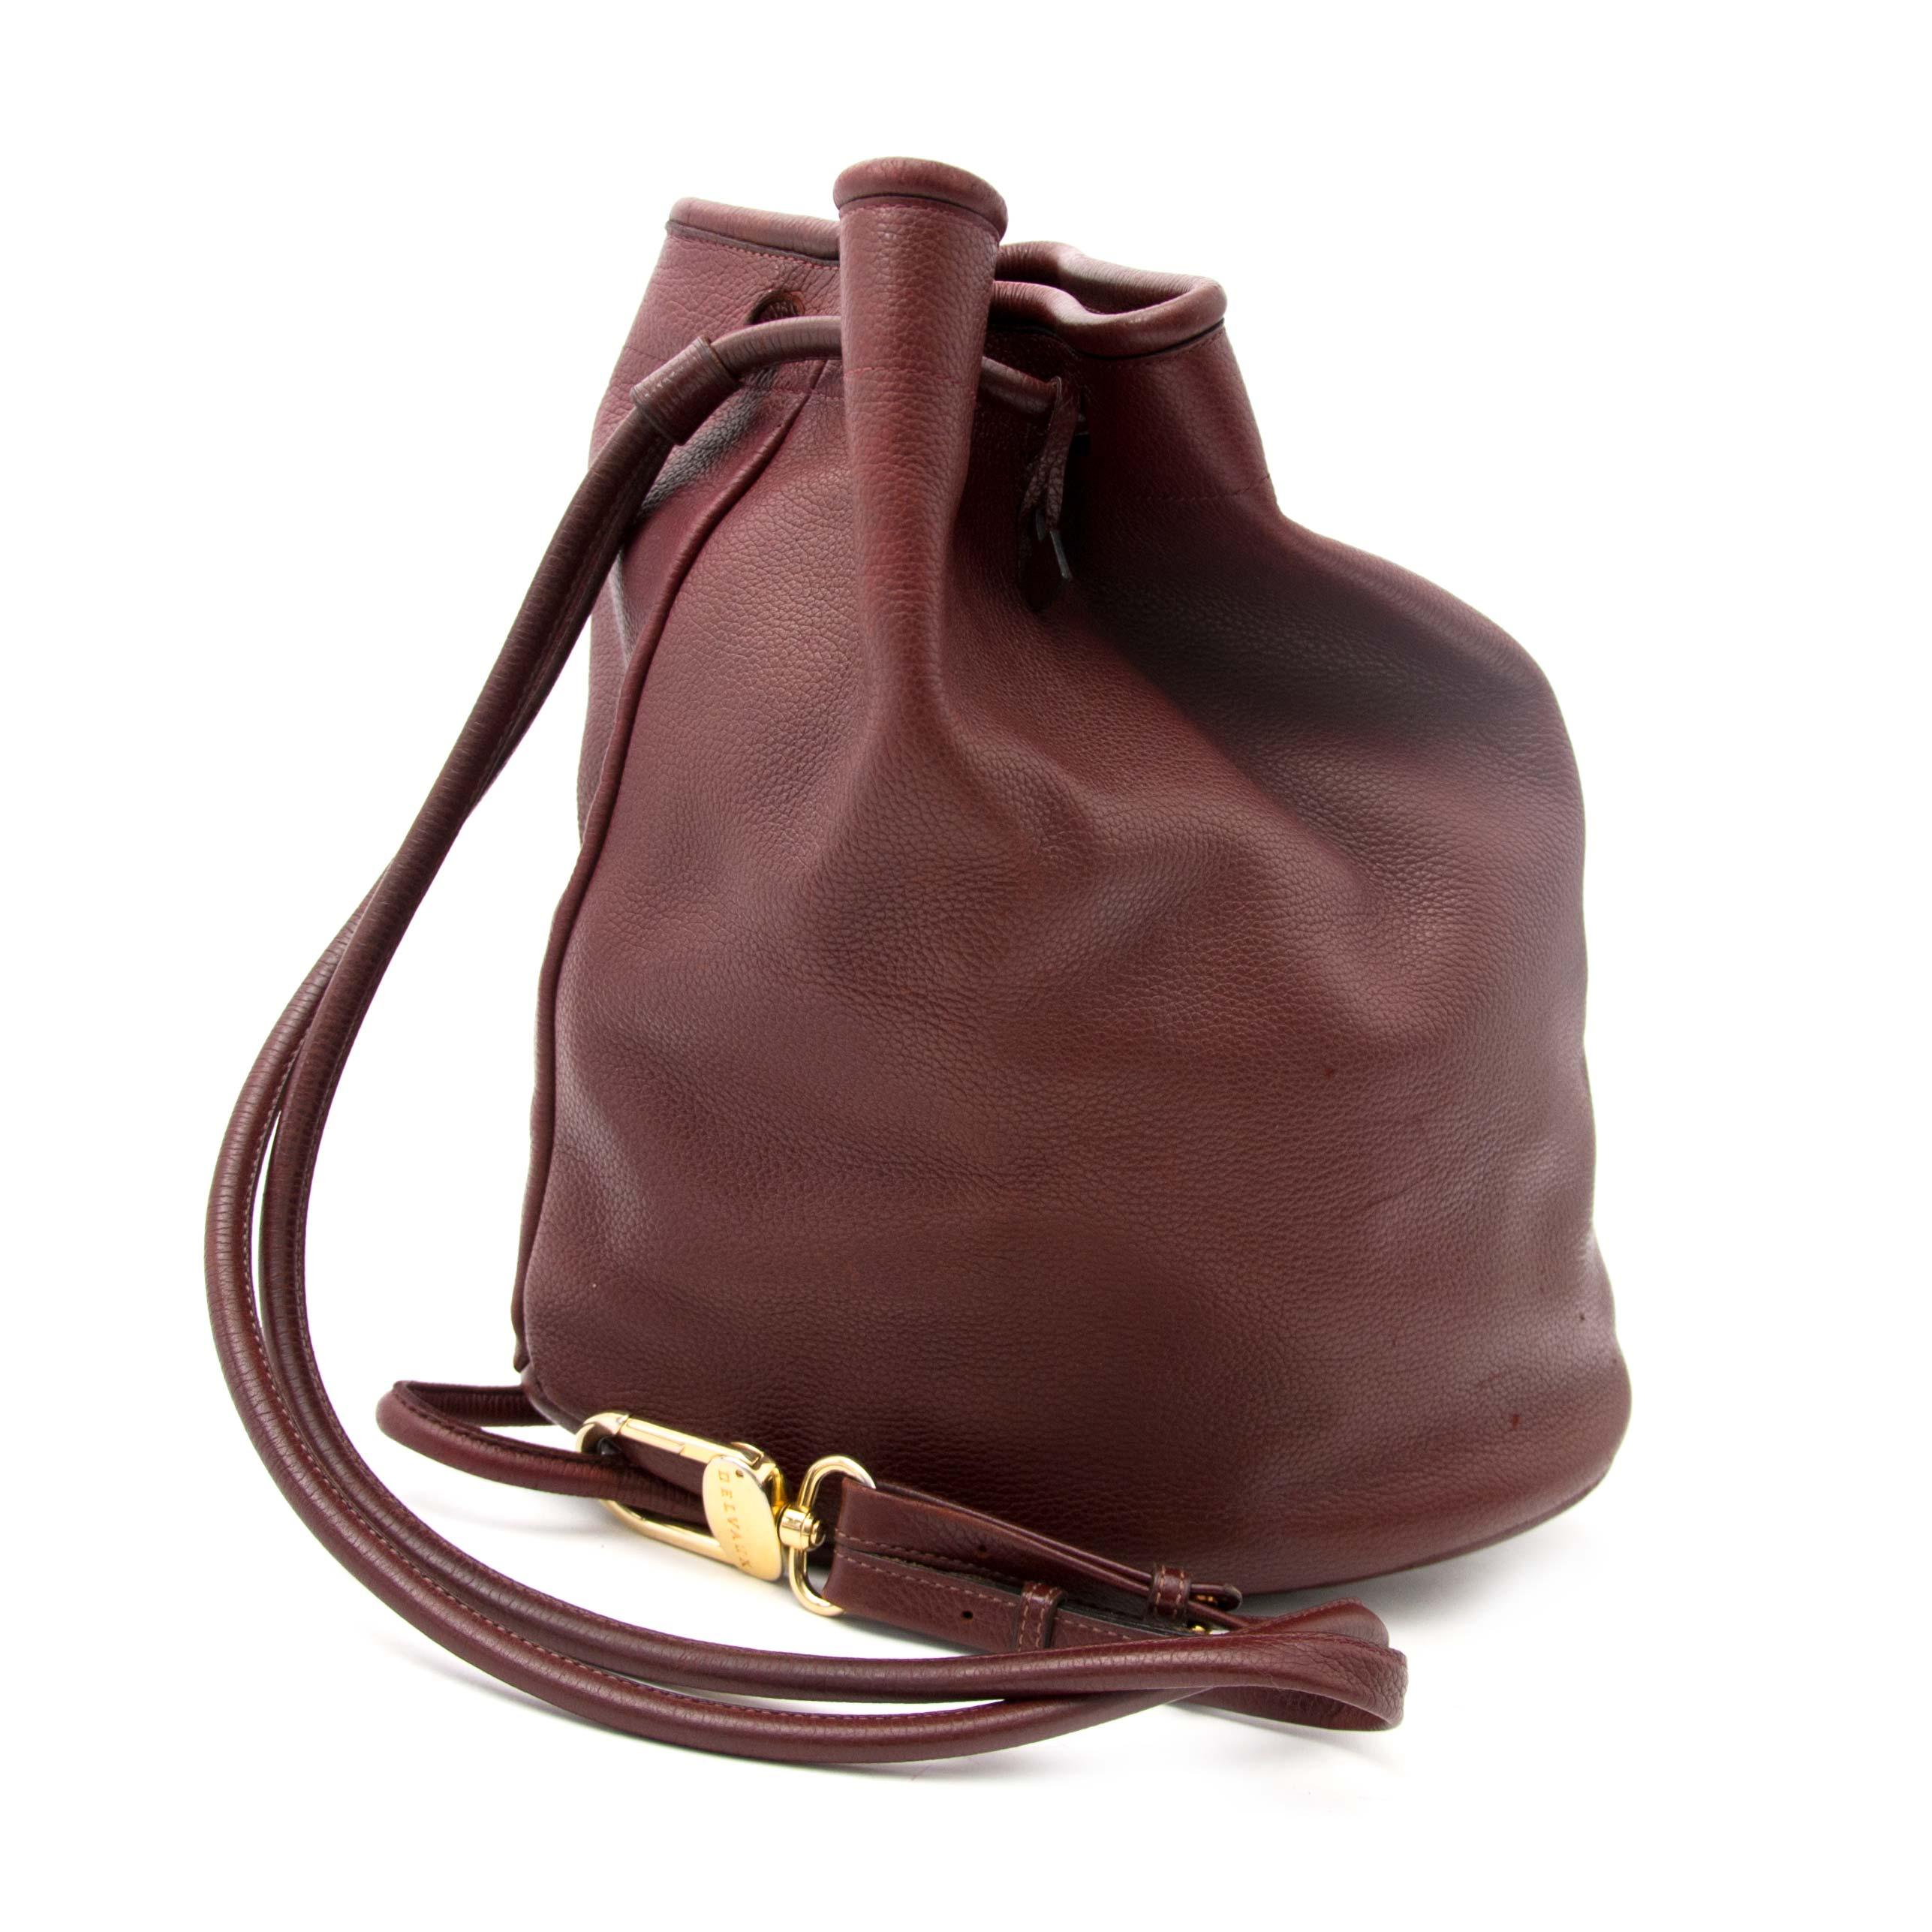 Koop en verkoop uw Delvaux Bordeaux Drawstring Leather Bucket Bag